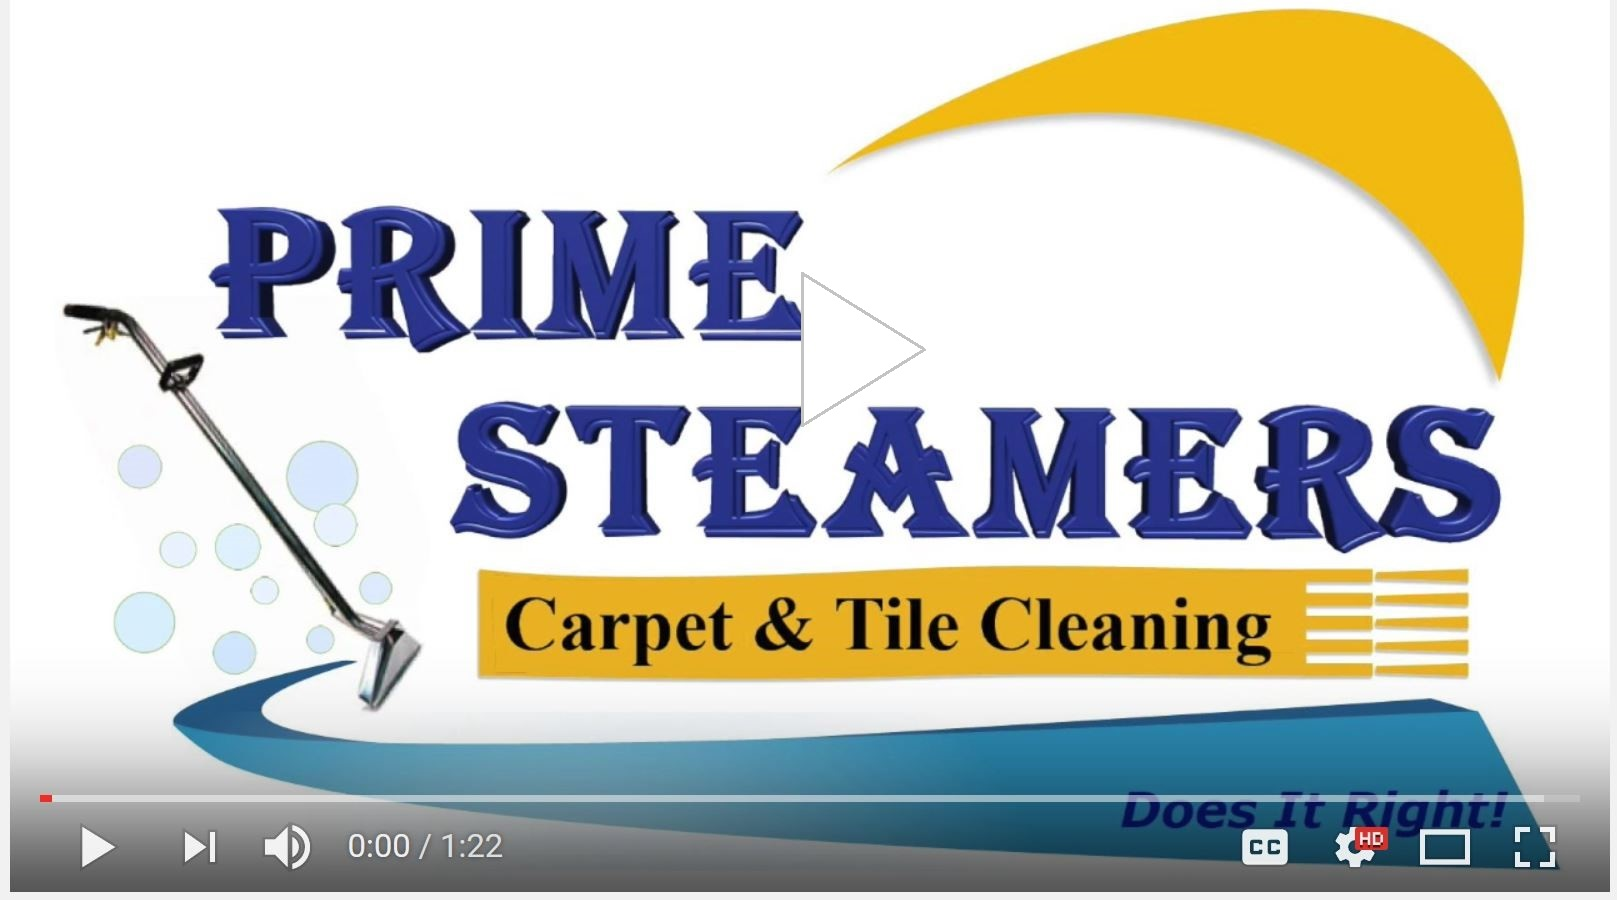 Prime Steamers - cleaning videos carpet cleaning and floor cleaning 954-496-2289